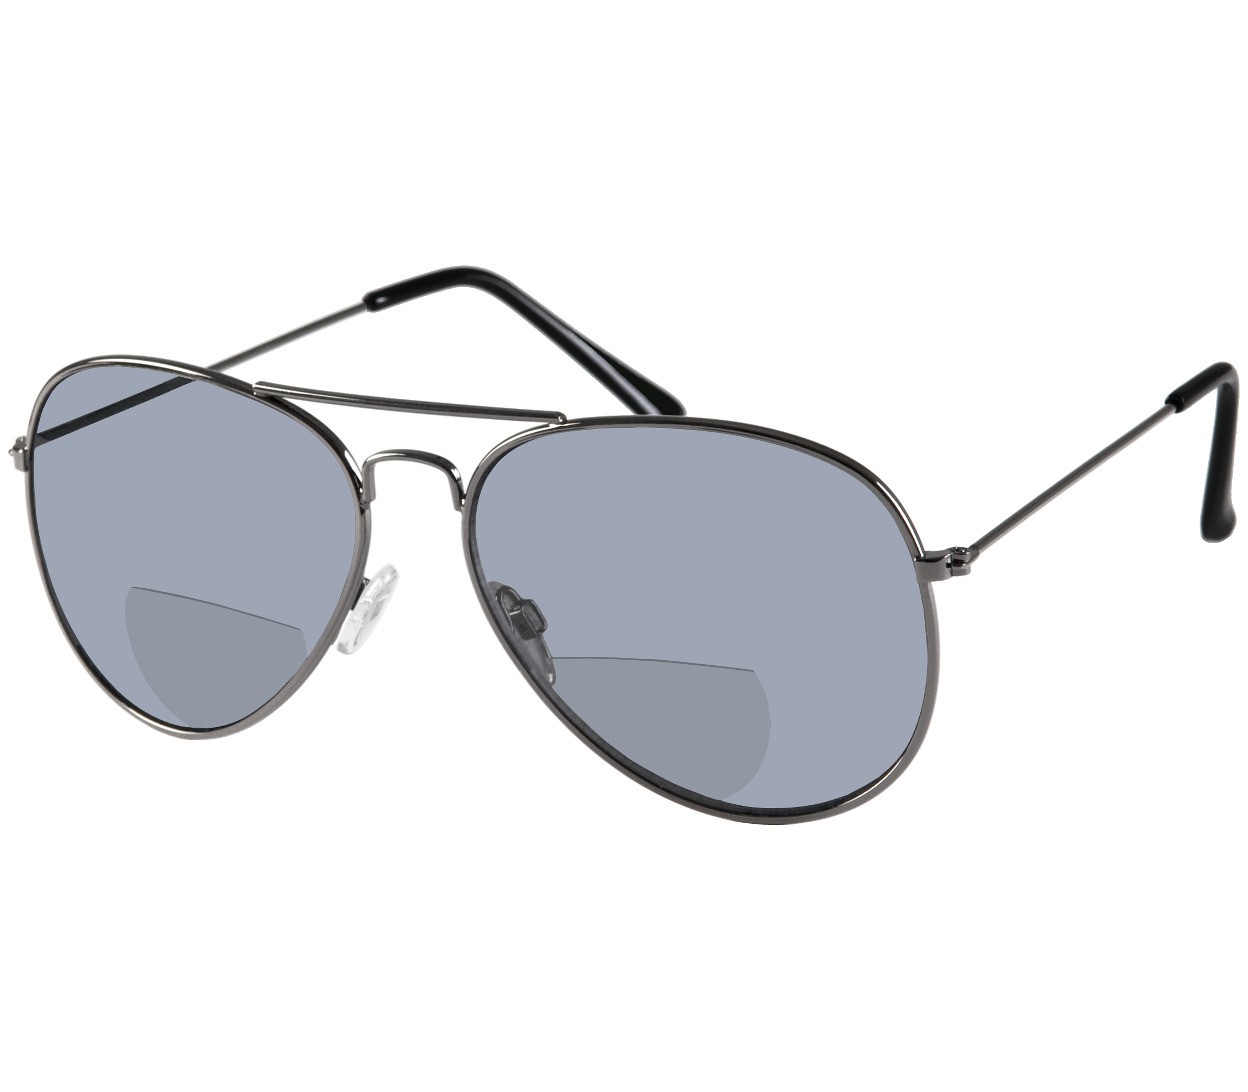 Main Image (Angle) - Houston (Gunmetal) Bifocal Sun Readers